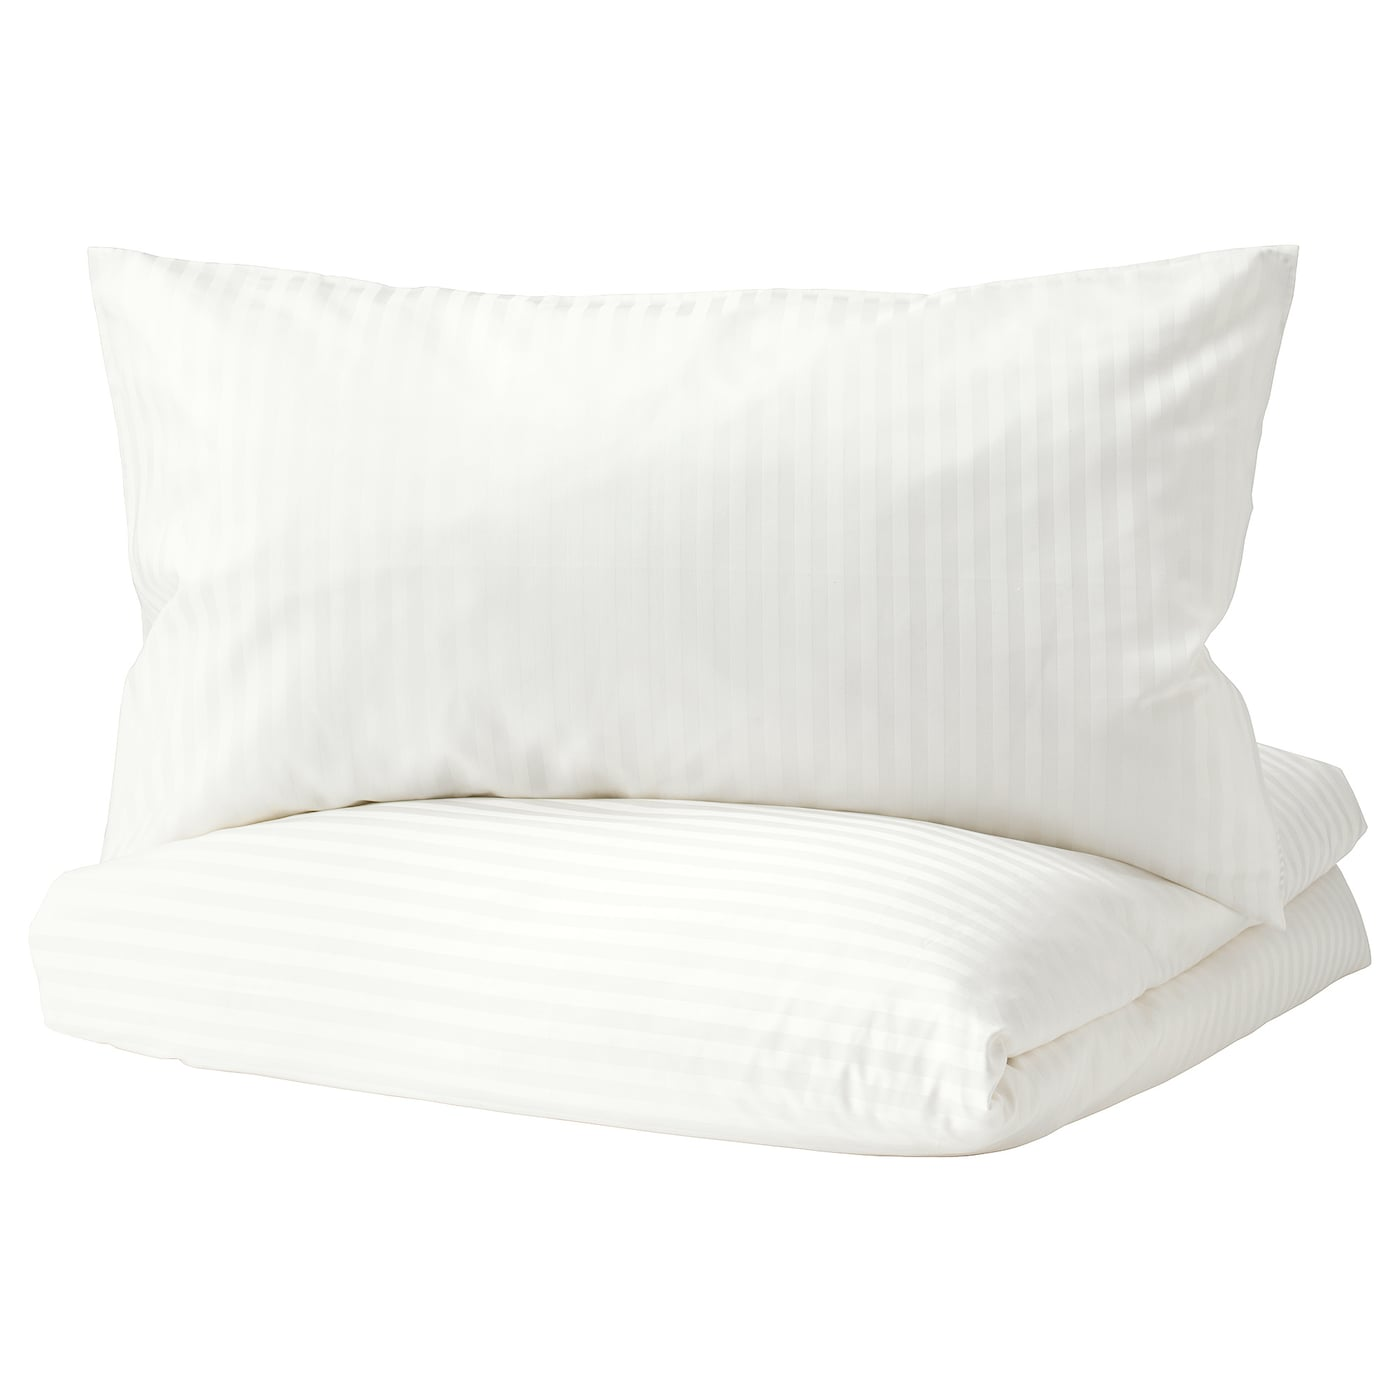 IKEA Replacement Pillow Case For